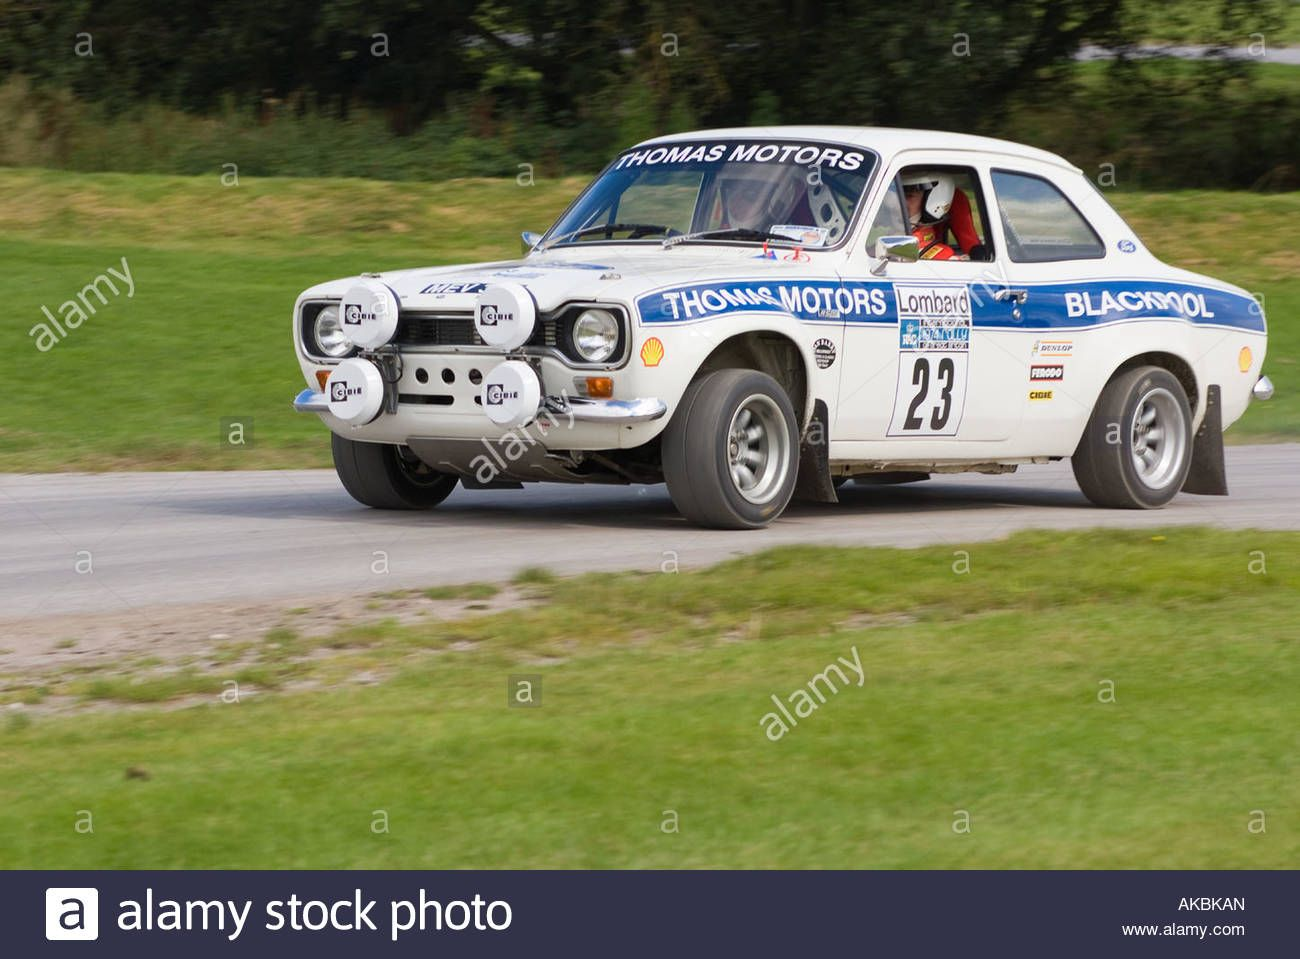 Ford Escort RSR 2500 | Oulton Park | Pinterest | Ford escort and Ford